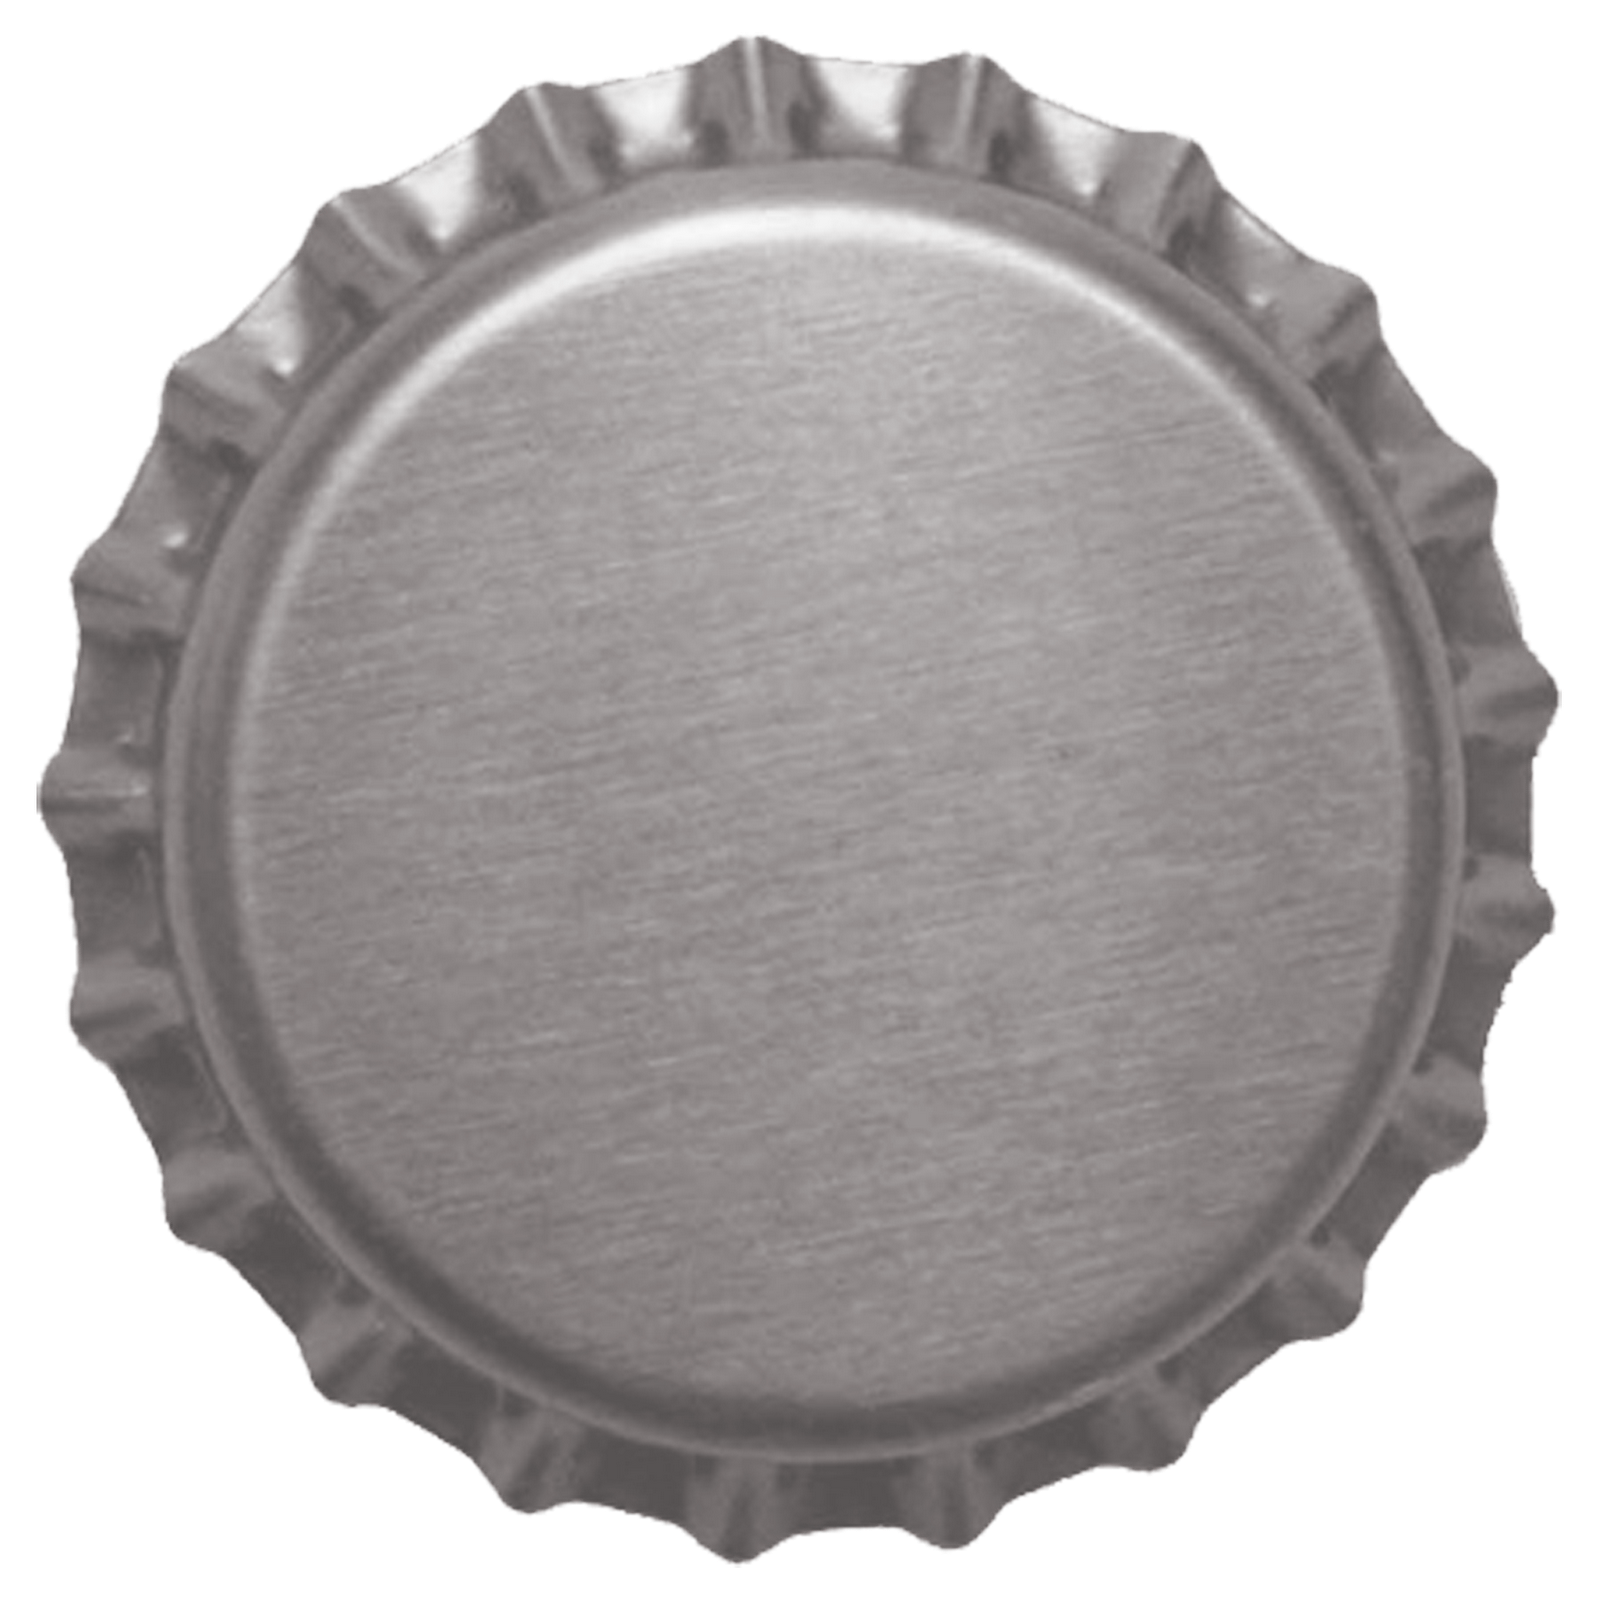 LuvDigiScraps Freebies: Bottle Caps